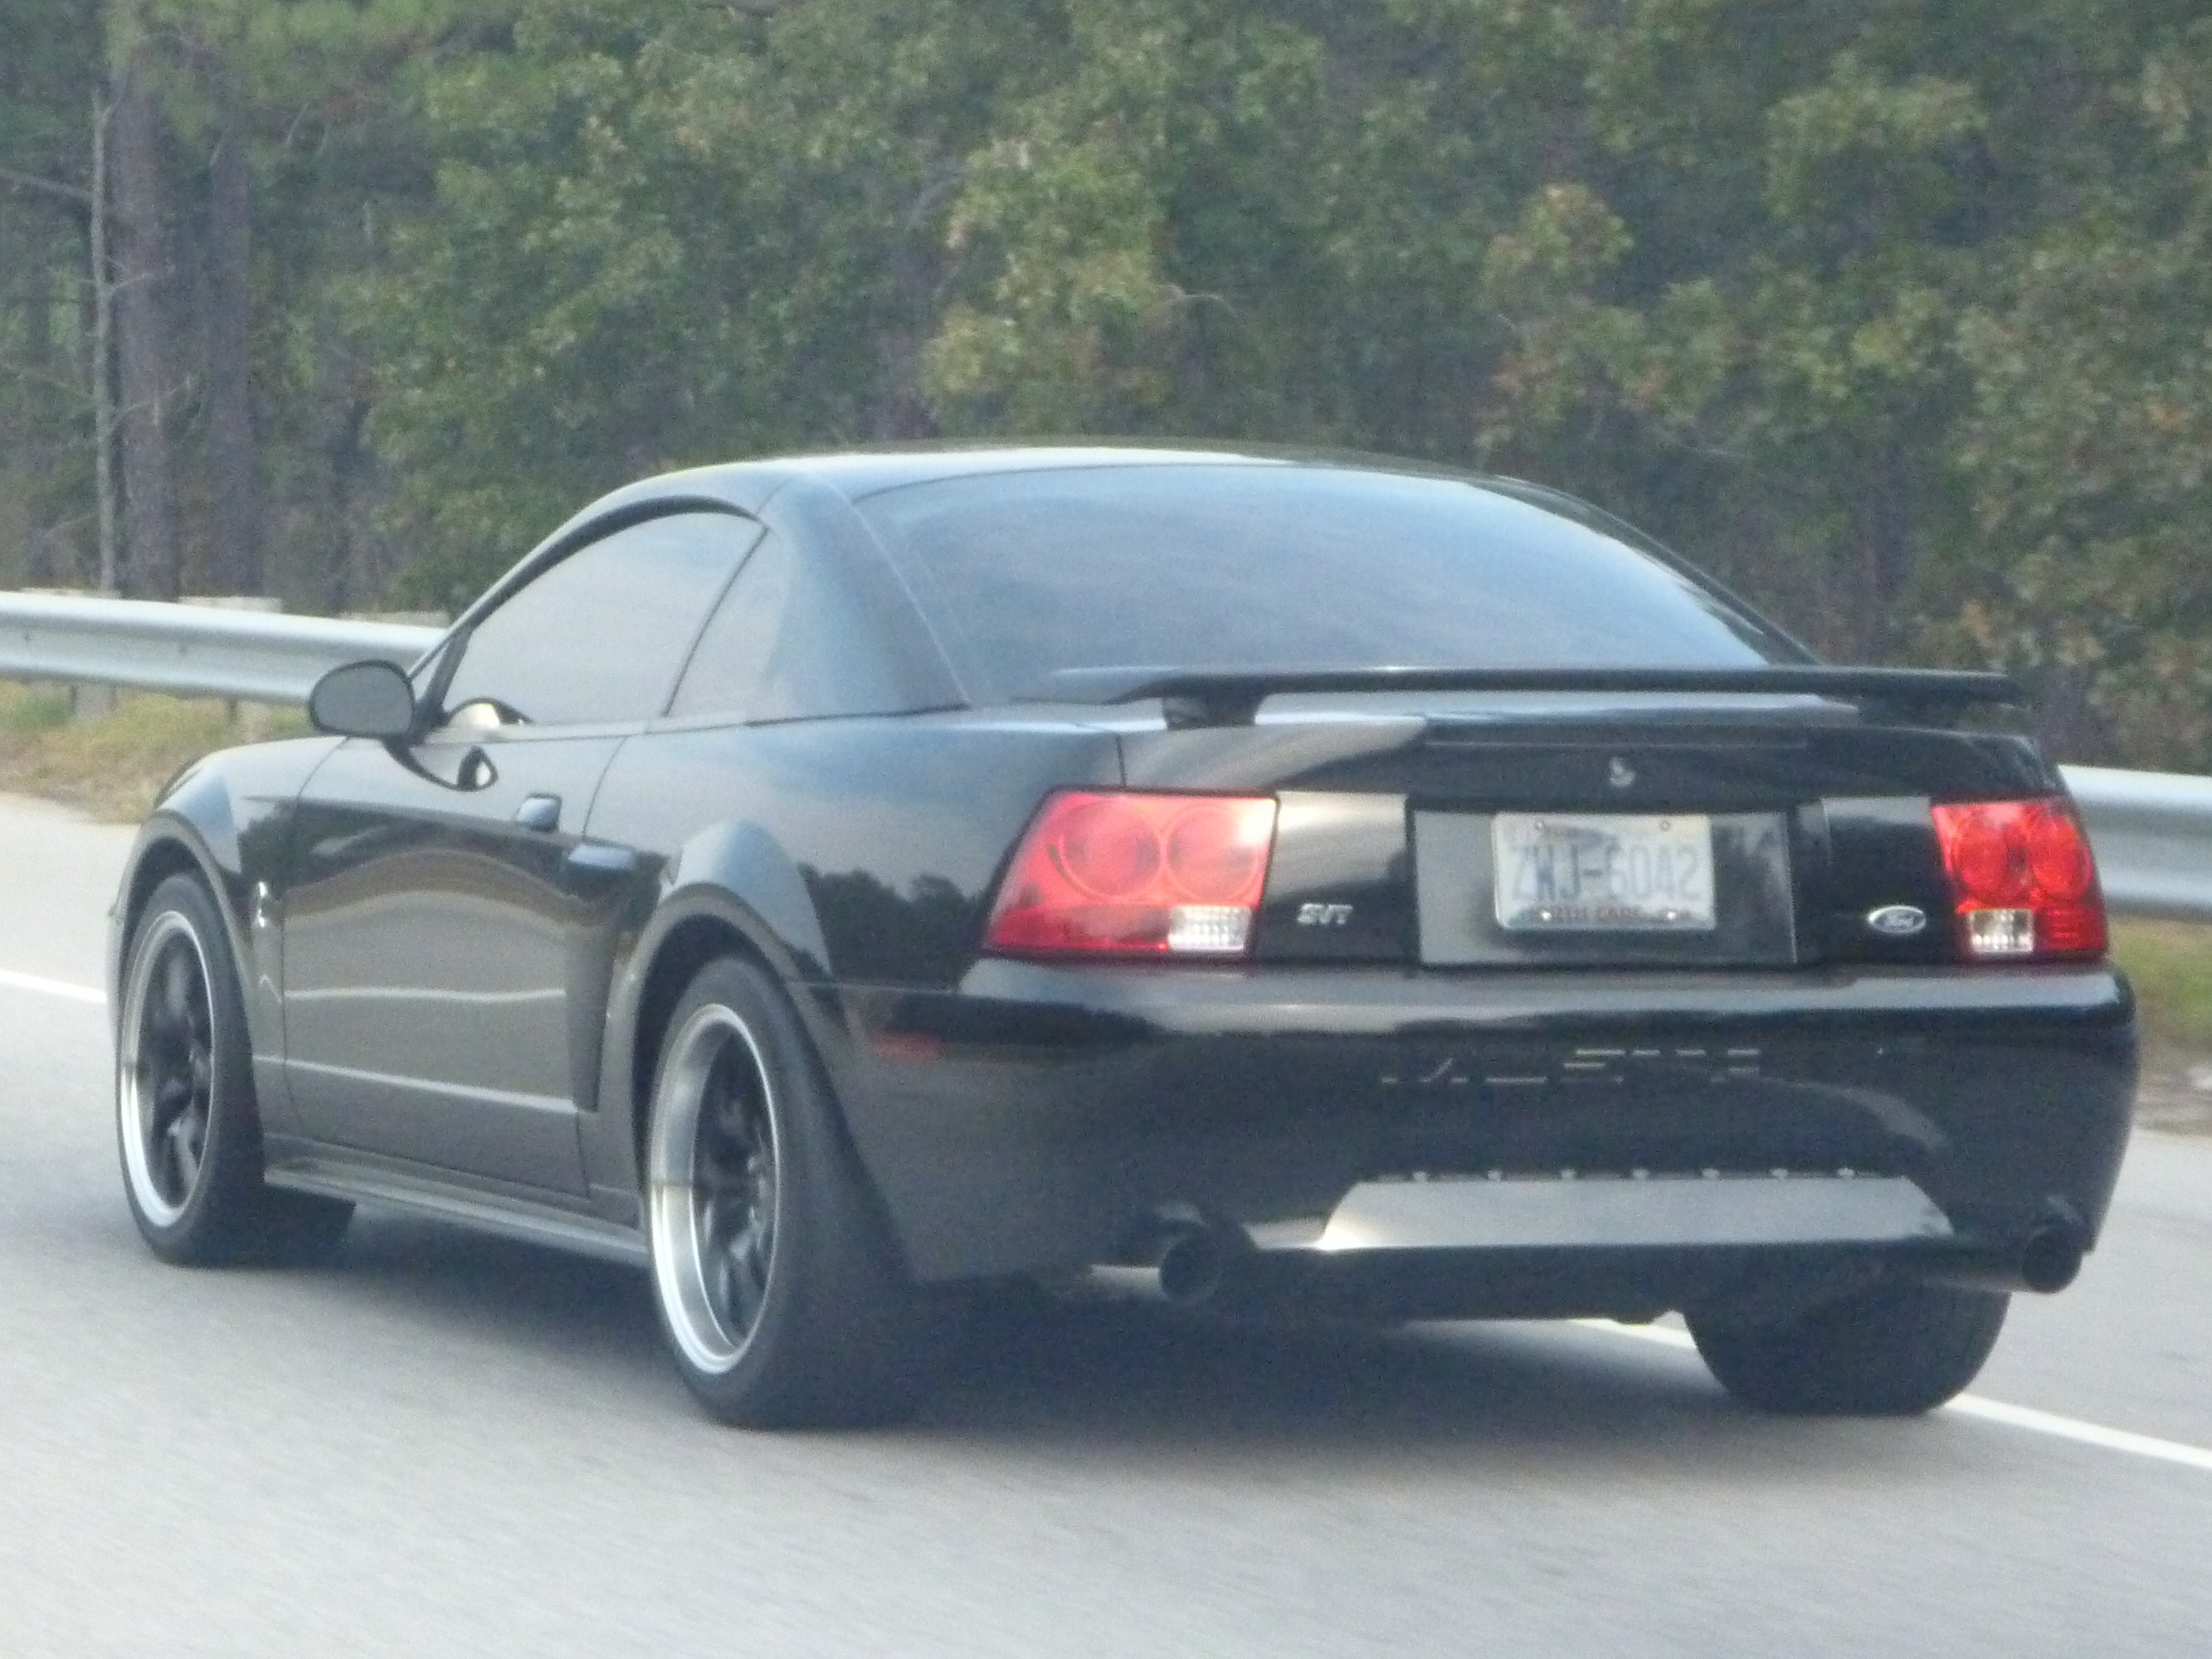 Sxy sgt 2003 ford mustang 38797774040 original